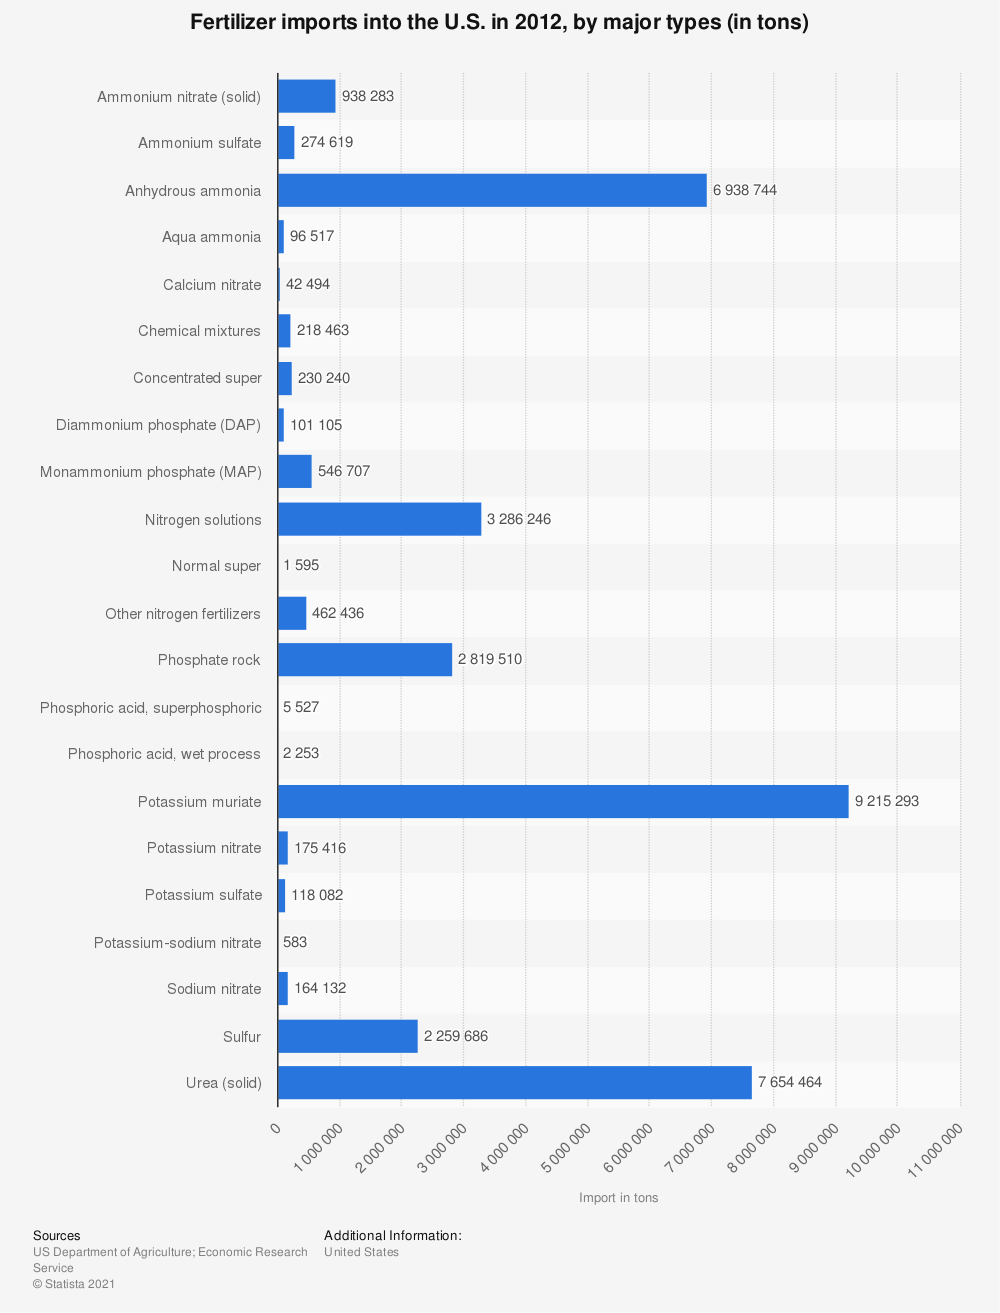 Statistic: Fertilizer imports into the U.S. in 2012, by major types (in tons) | Statista